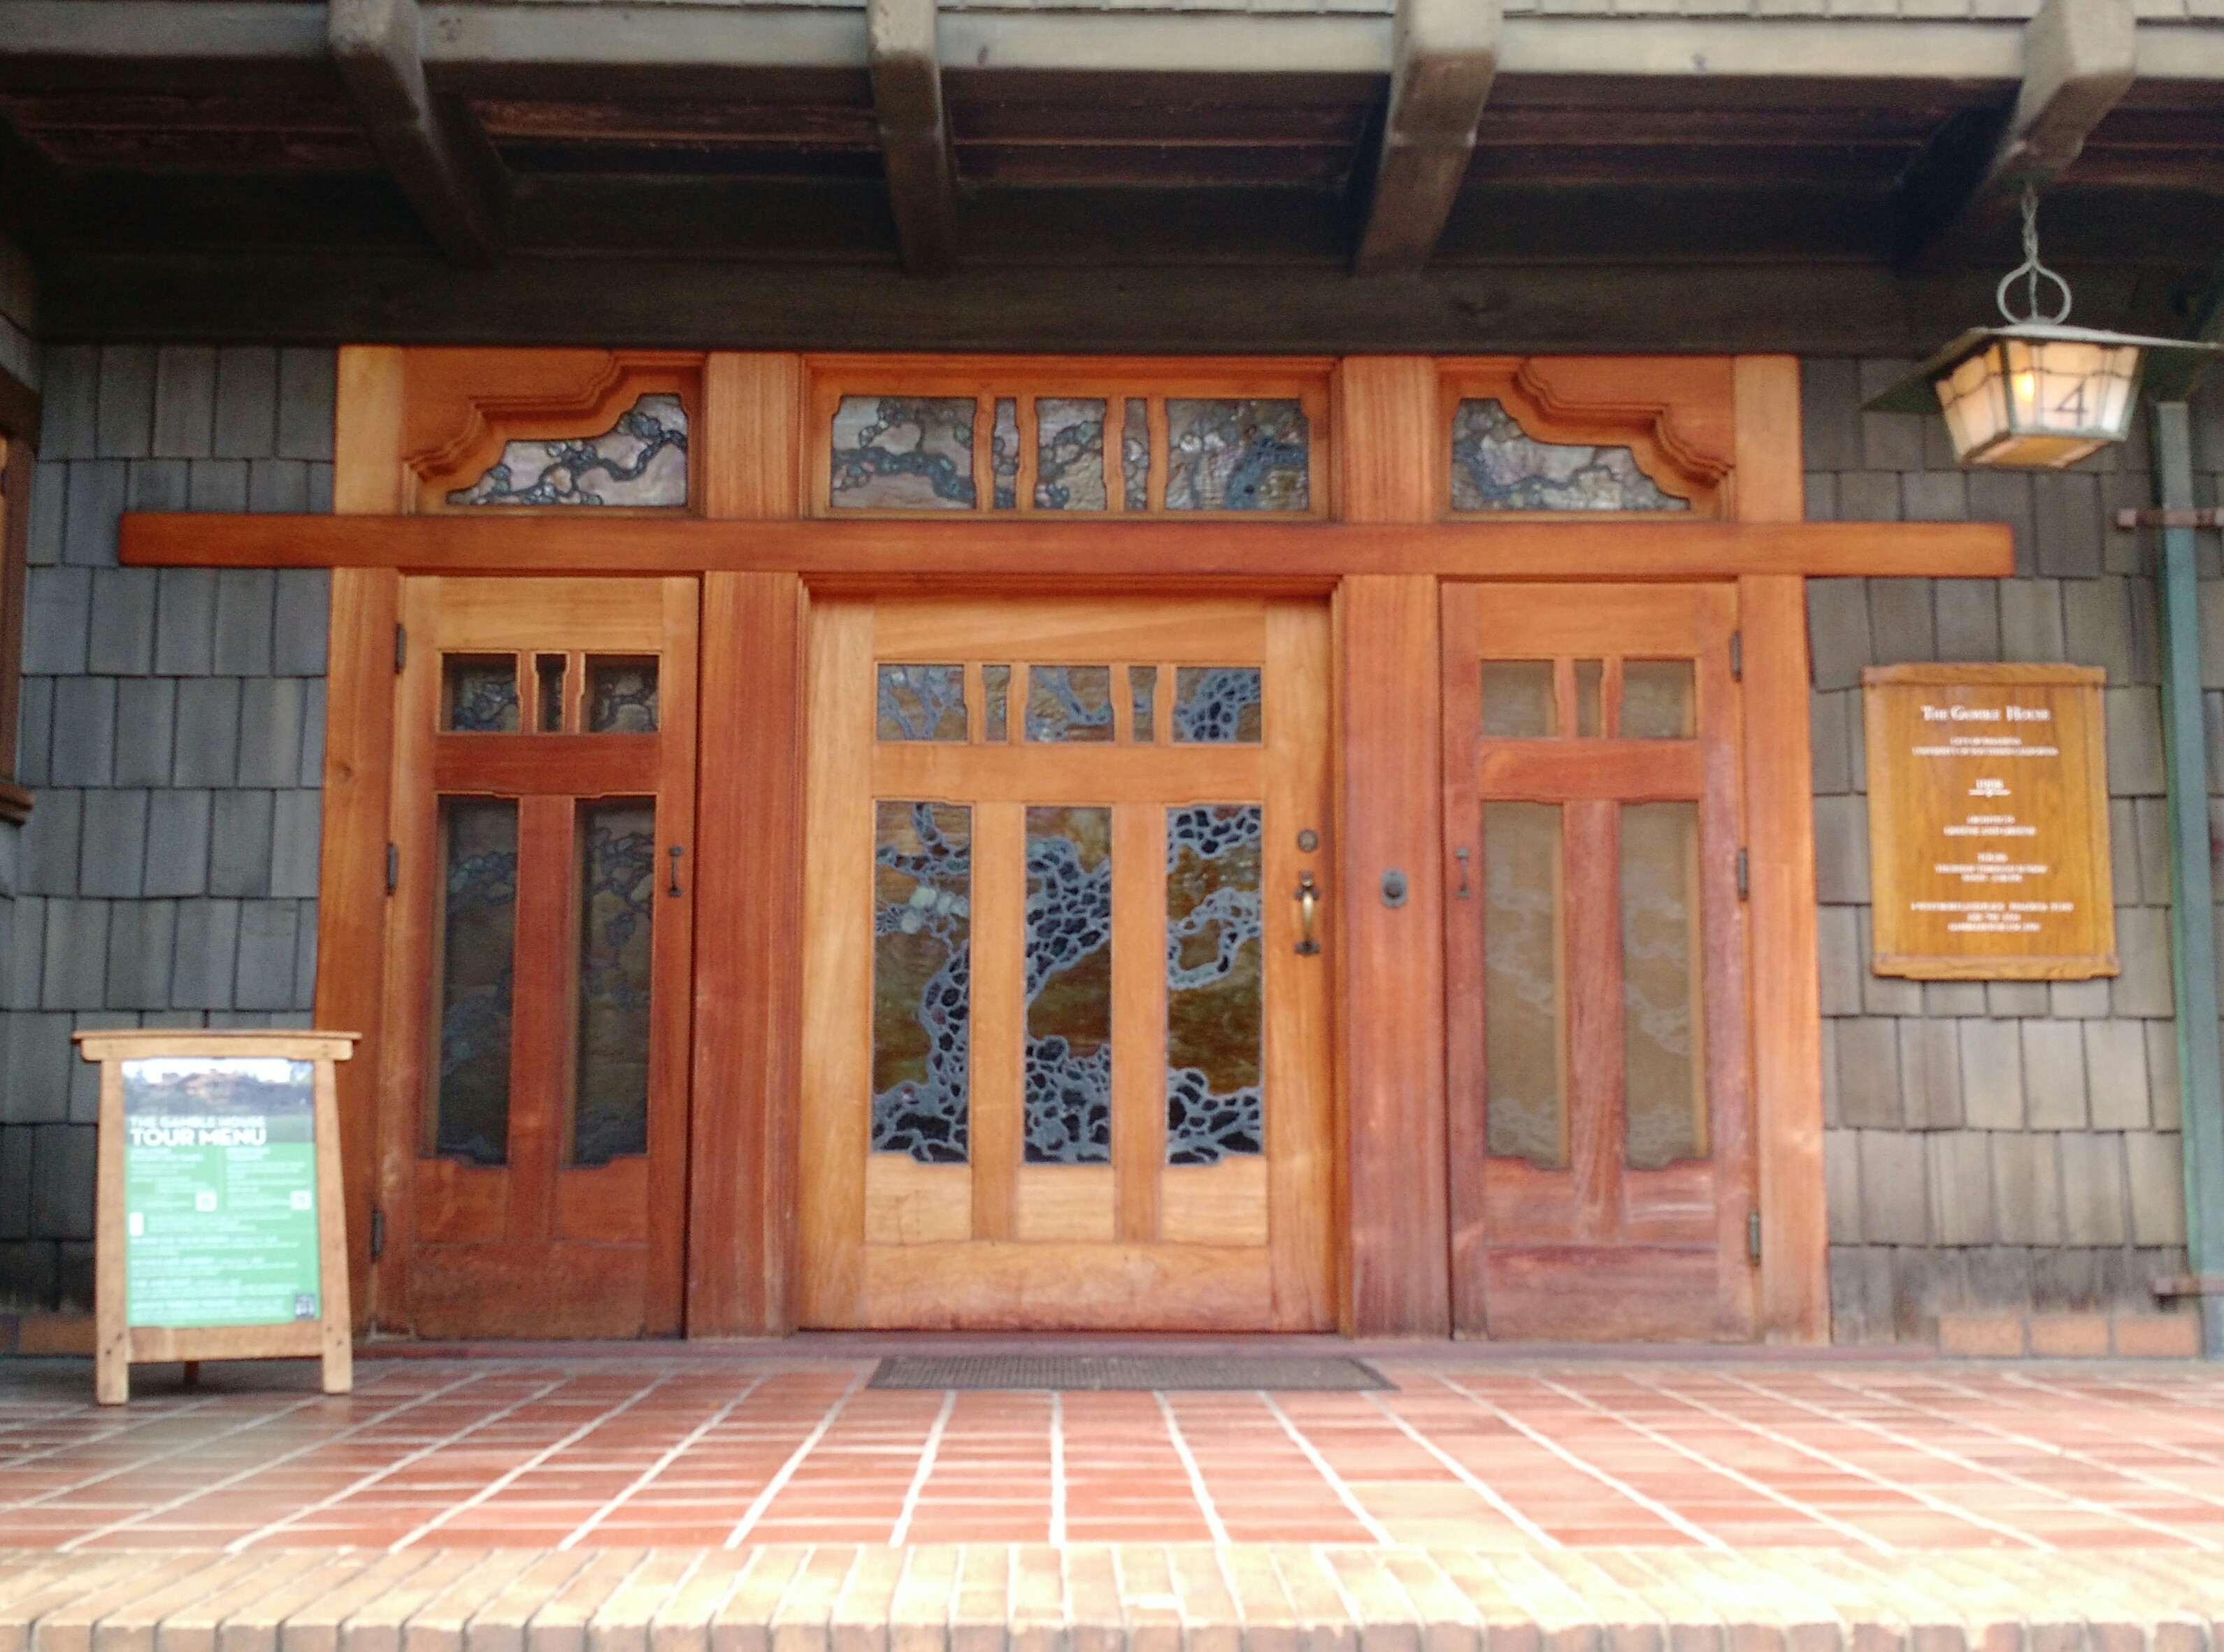 Field trip – The Gamble House – Jess McNaughton